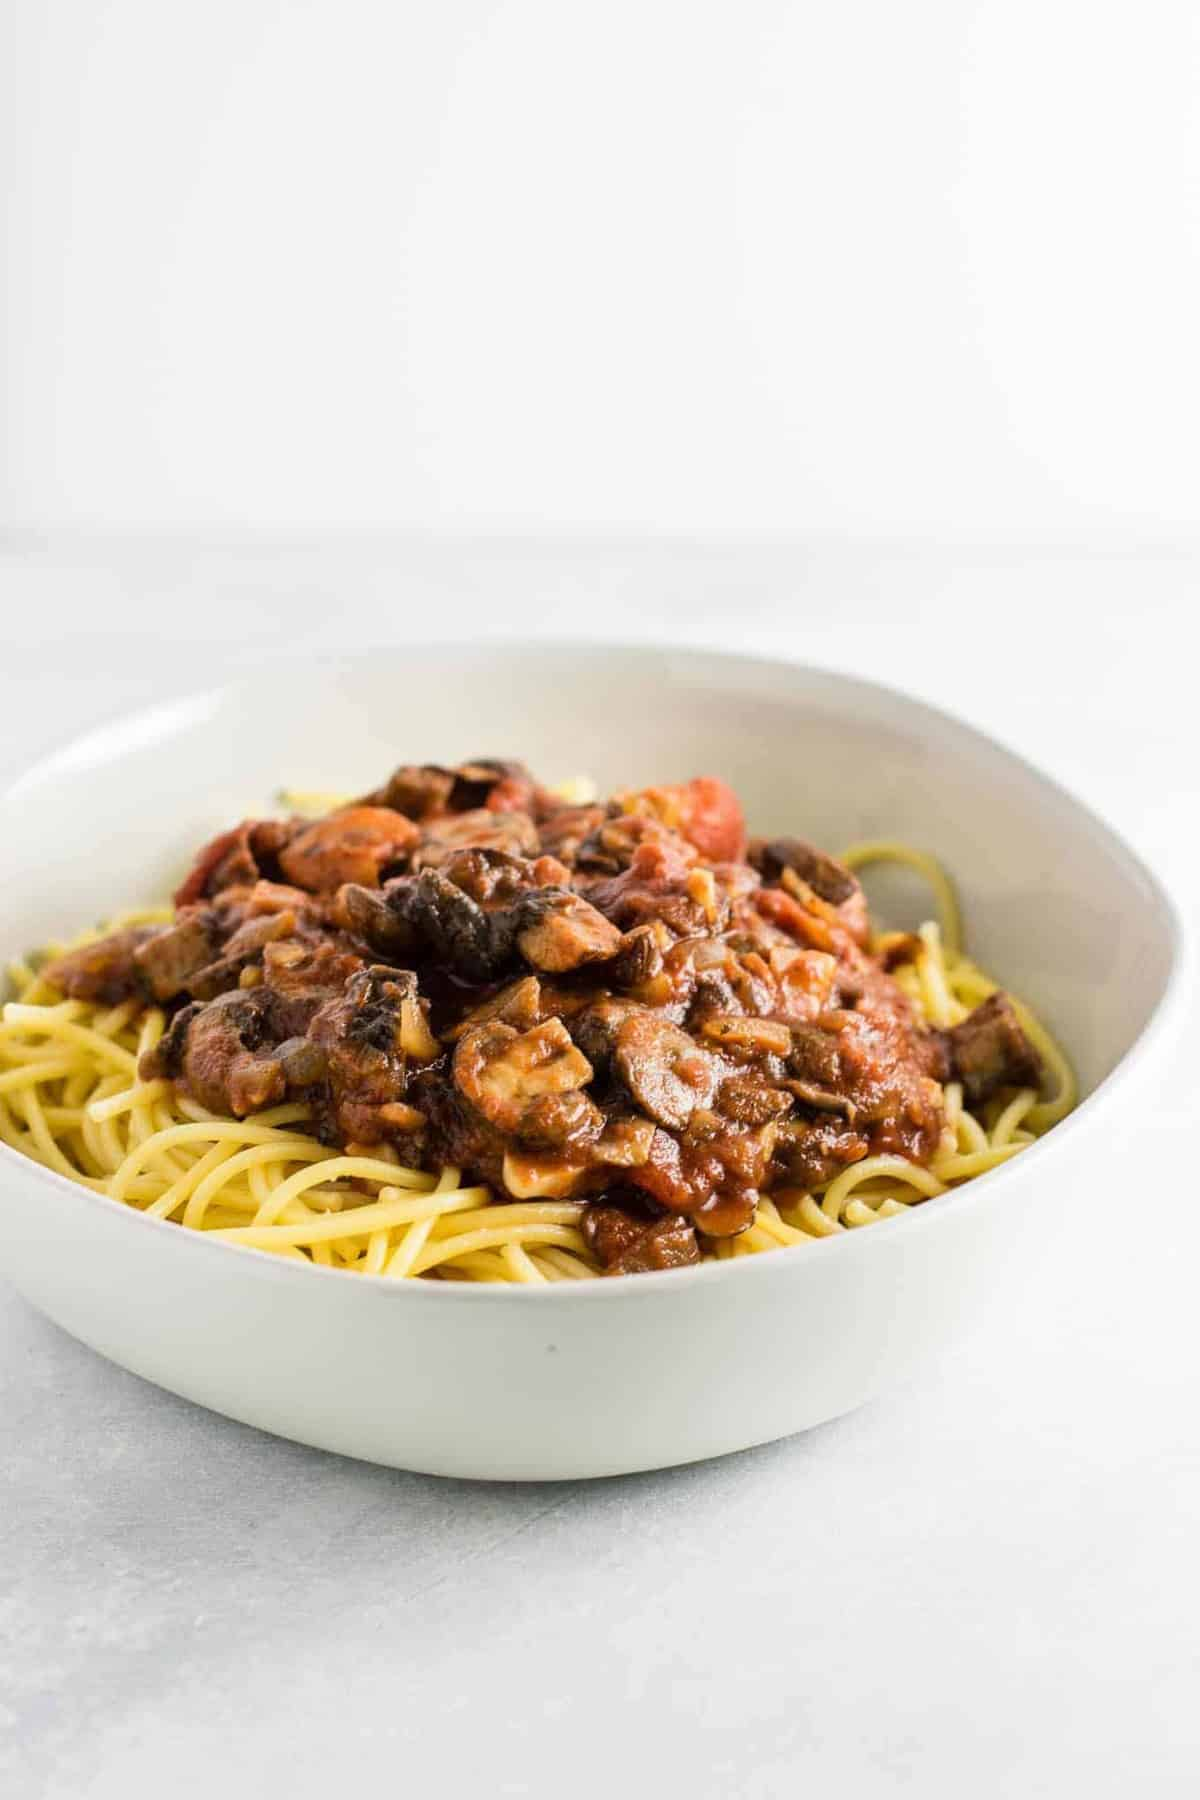 meatless spaghetti sauce over pasta in a white bowl